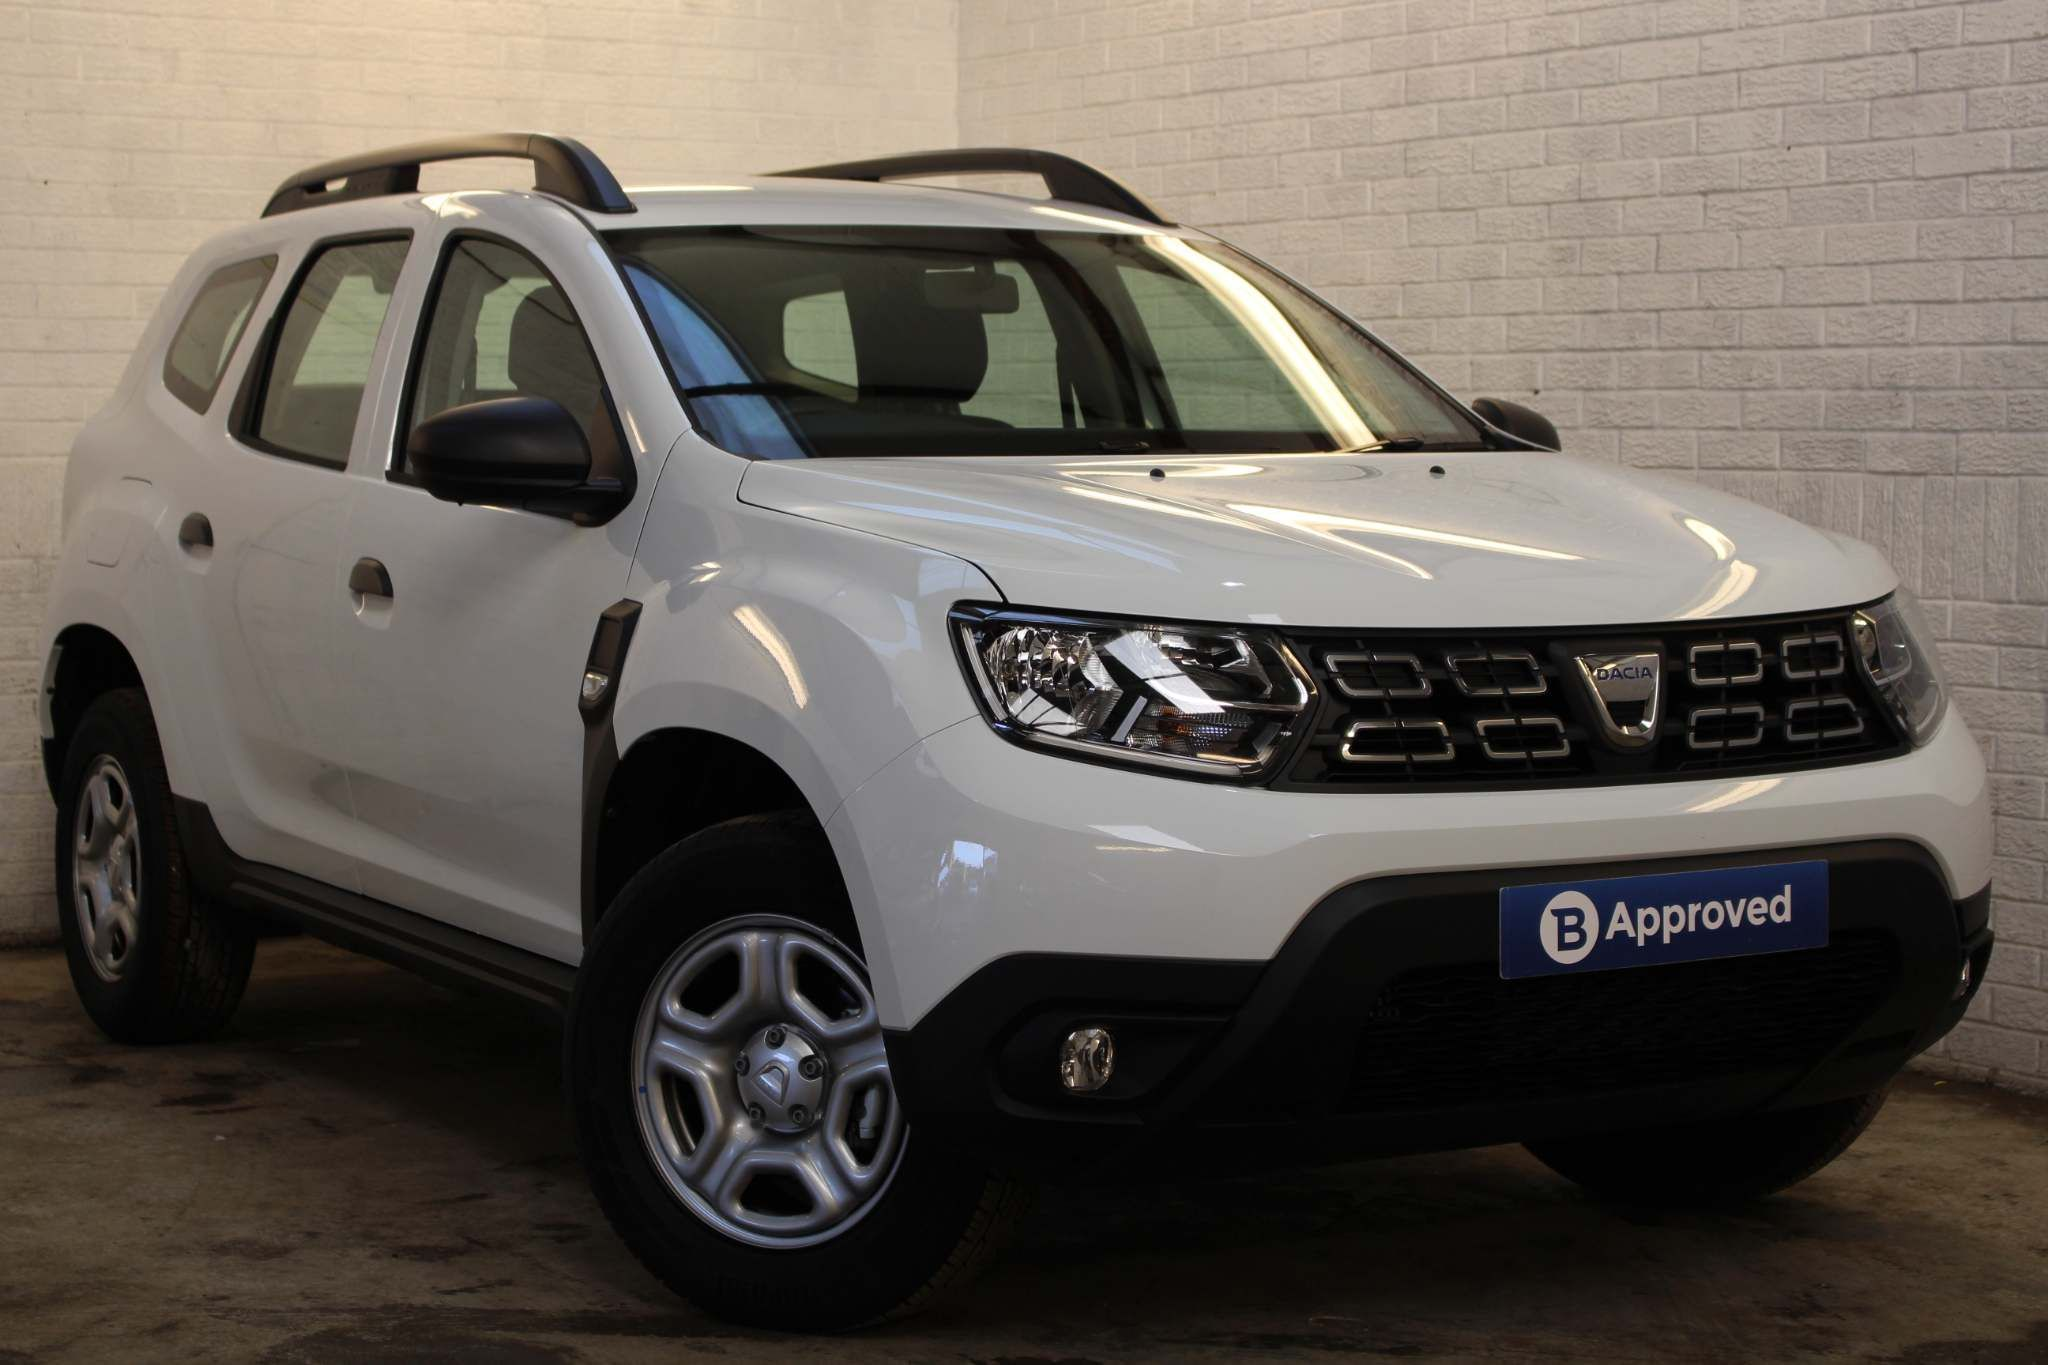 Dacia Duster 1.0 TCe Essential (s/s) 5dr